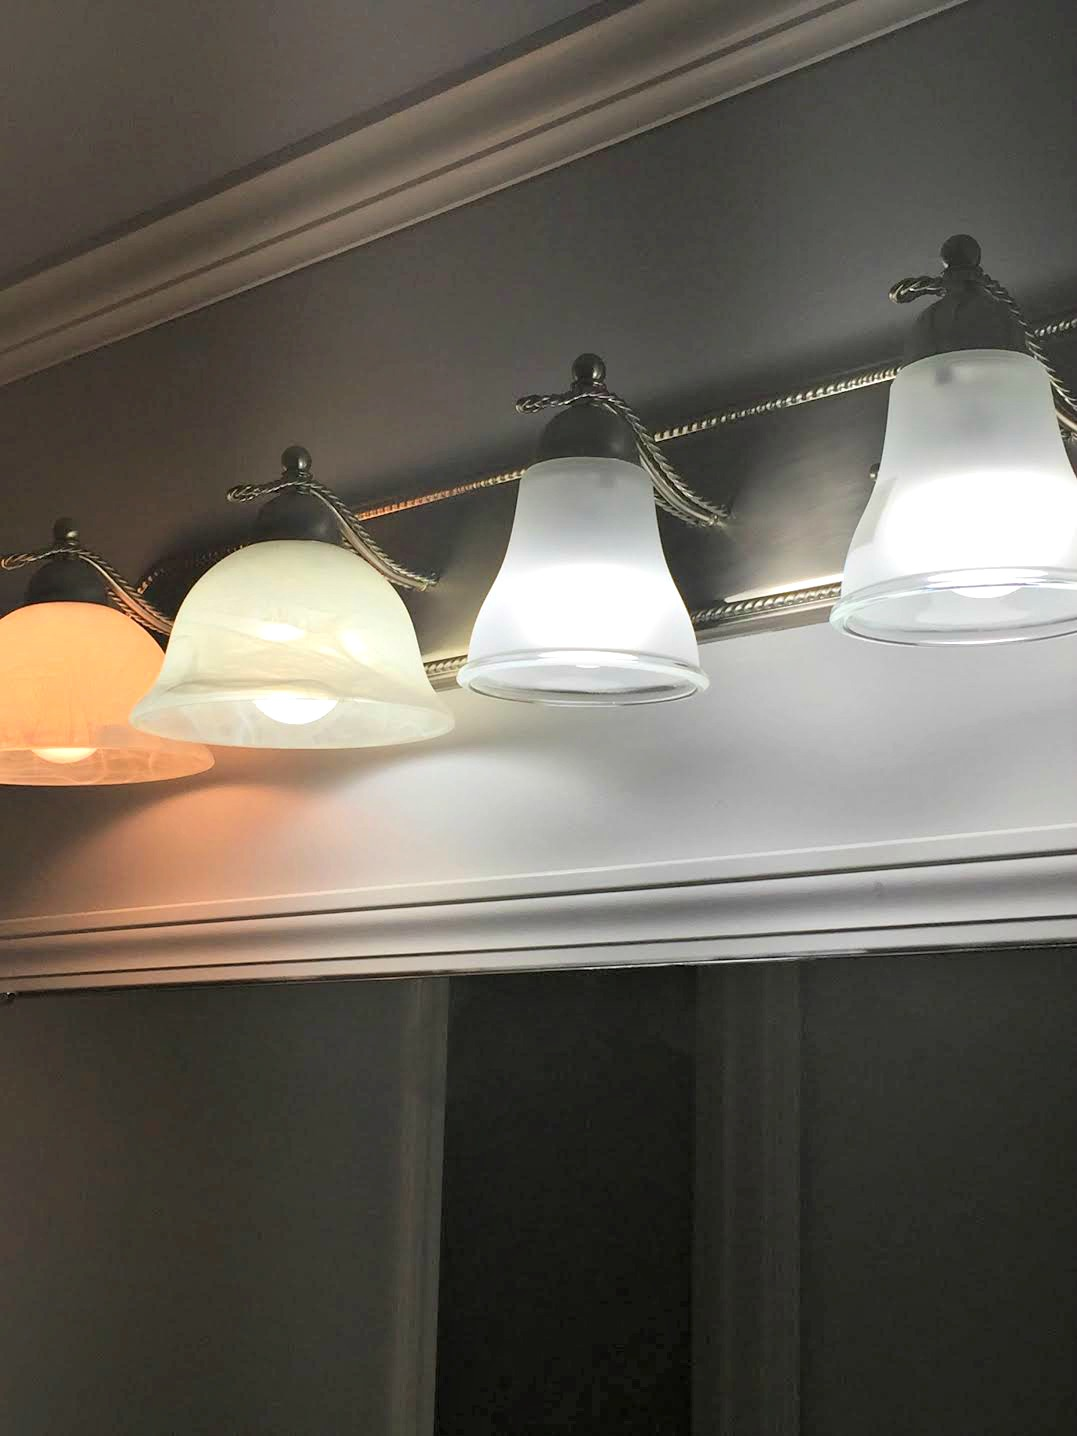 Comparing incandescent and daylight bulbs